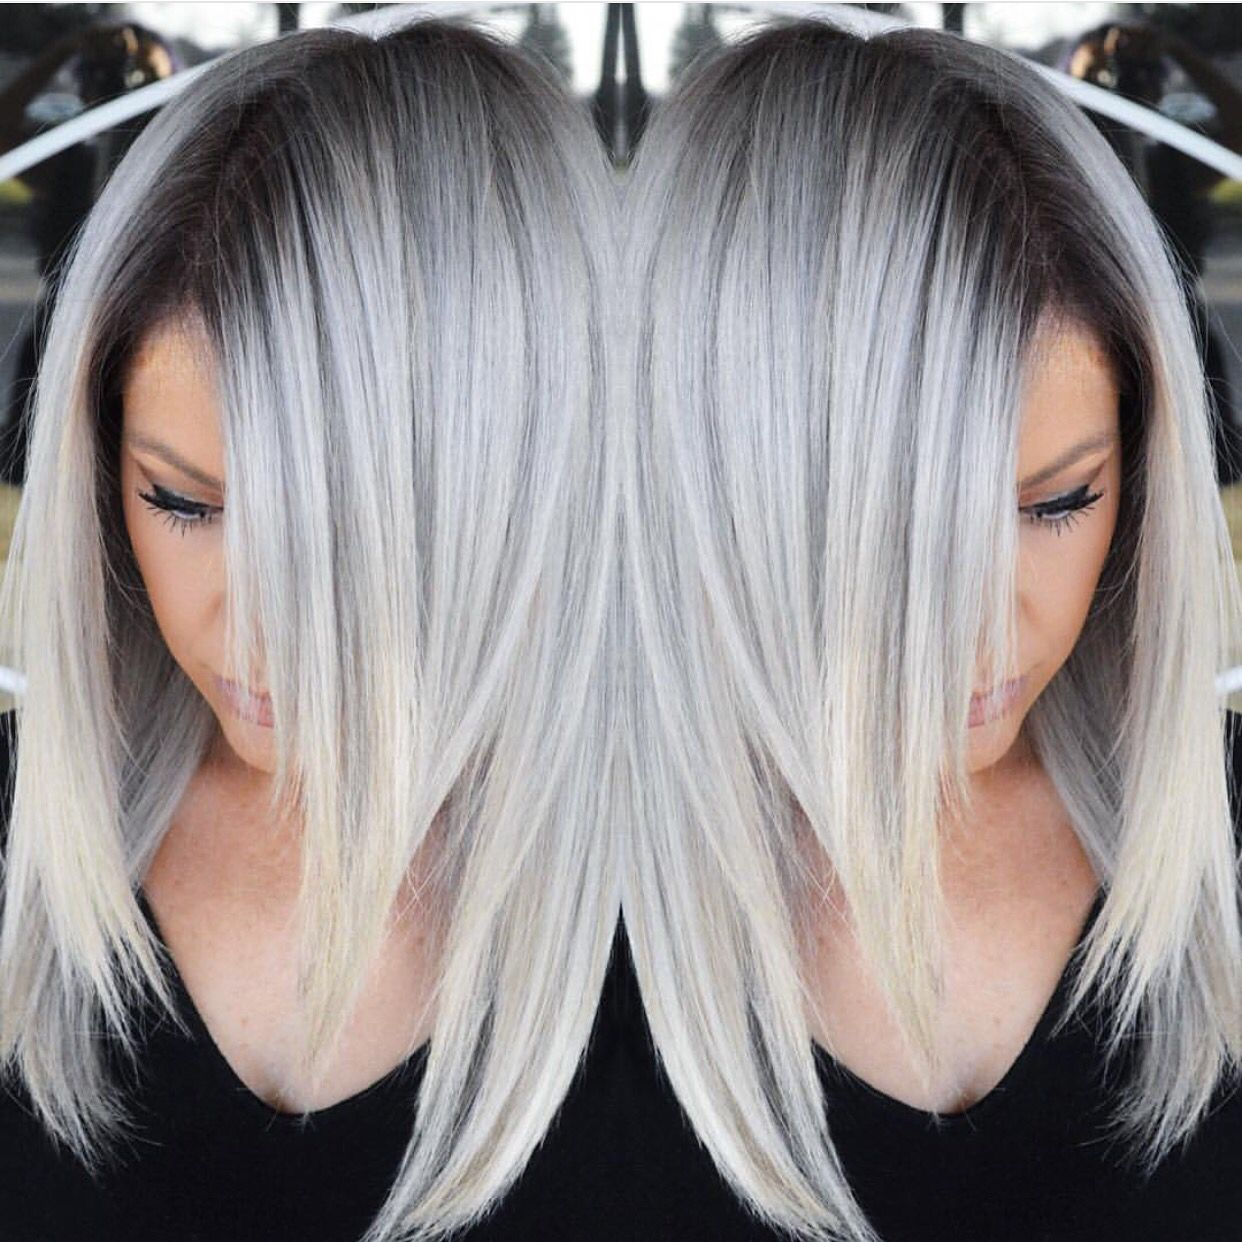 Stunning Multidimensional Silver hair color design with dark ...